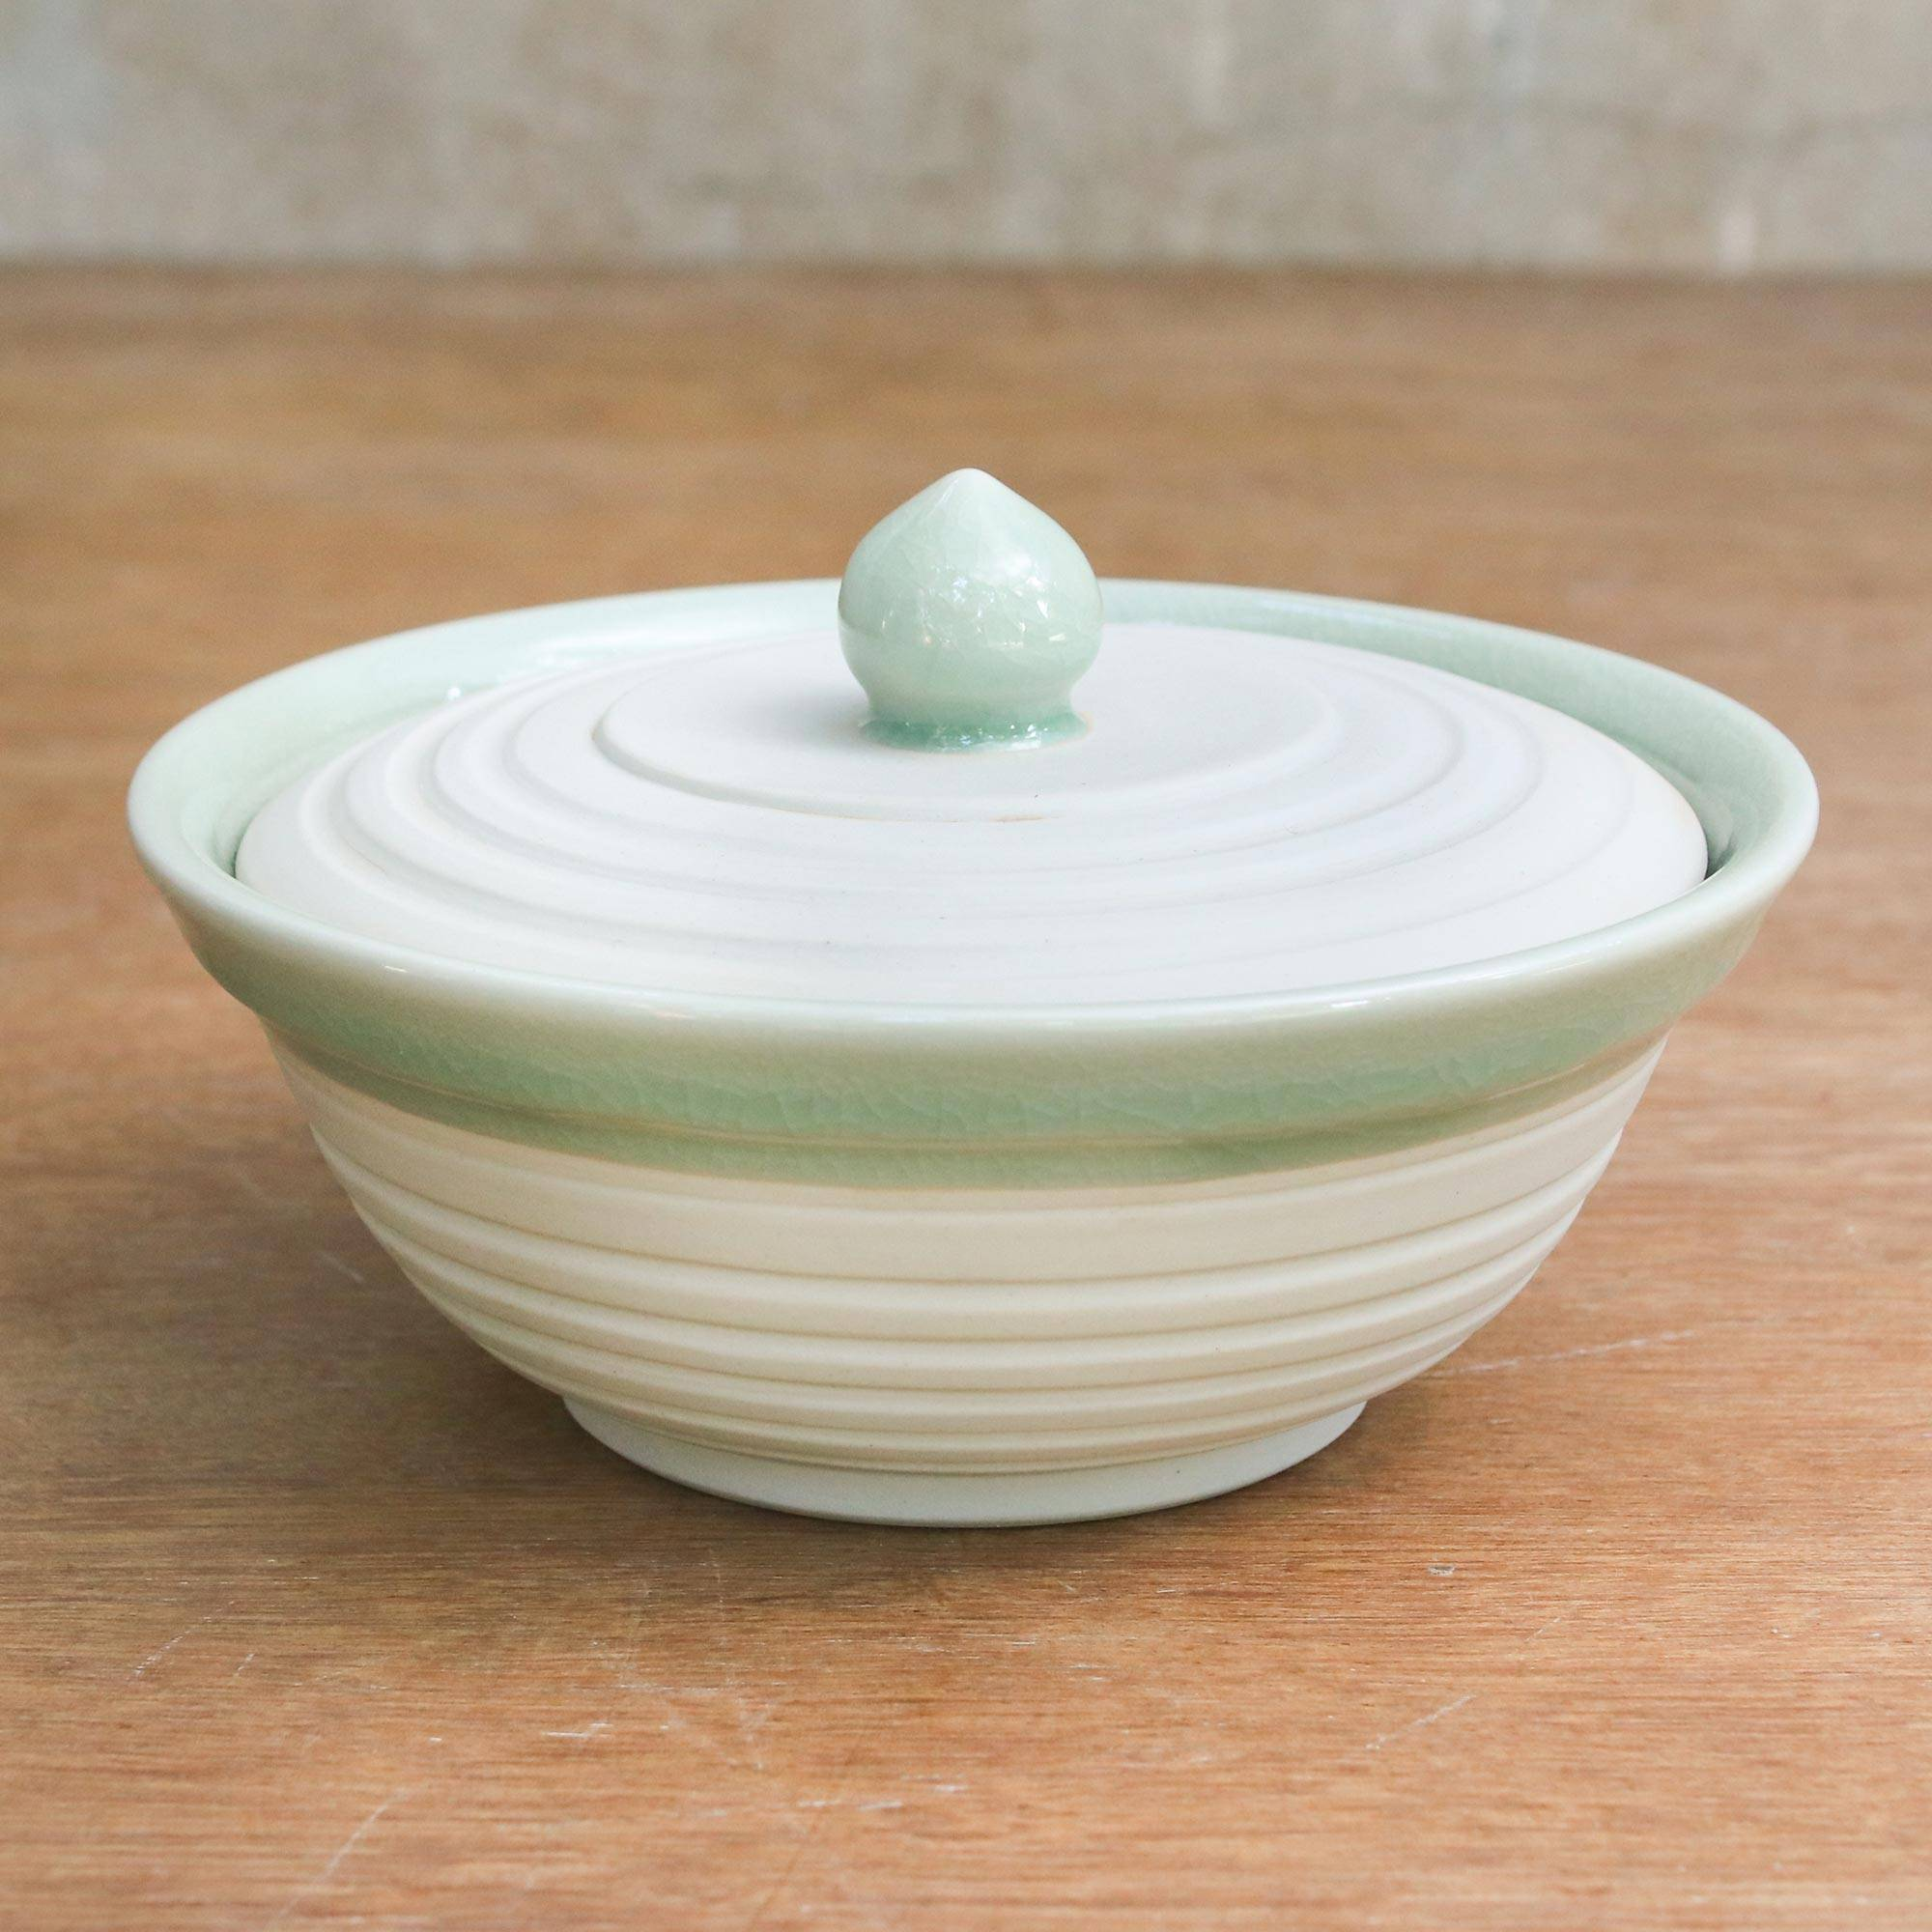 Small Decorative Celadon Dish//Bowl//Jar Ceramic